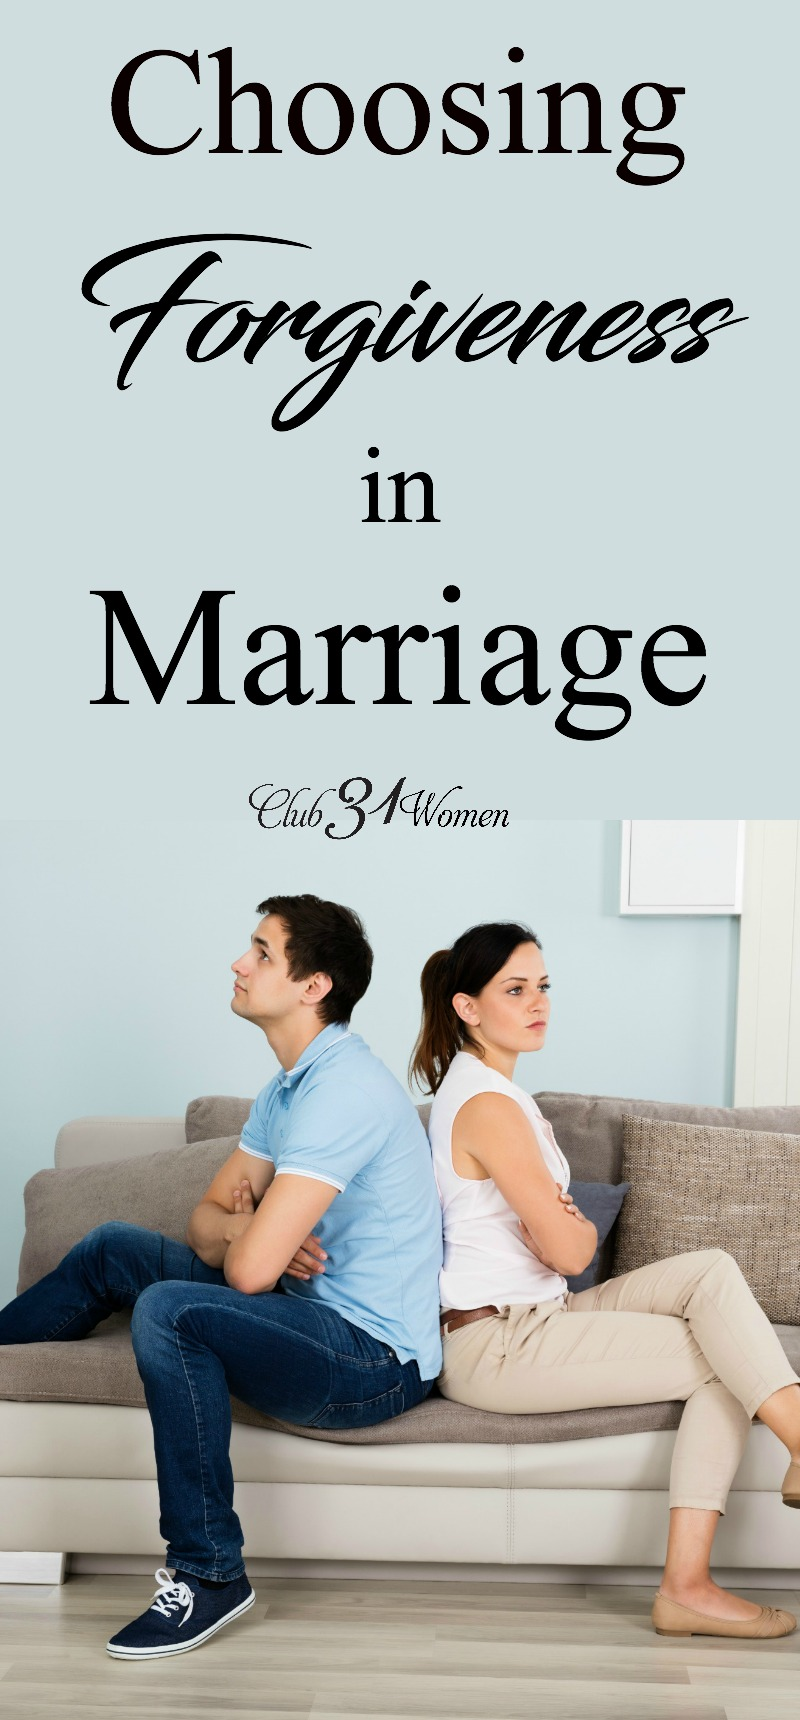 Sometimes we want to hold on to being right, not really thinking about the cost. But forgiveness in marriage offers a freedom pride never could. via @Club31Women